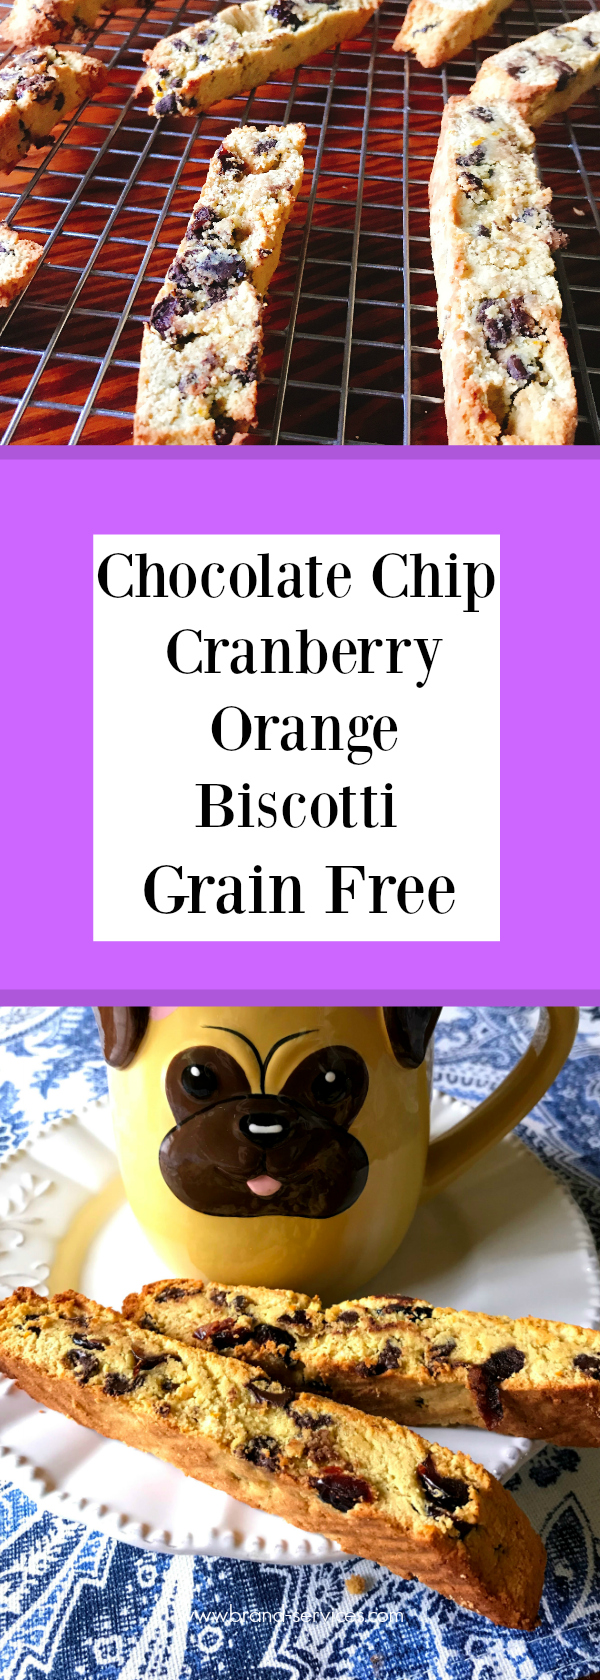 Chocolate Chip Cranberry Orange Biscotti - Grain Free and Paleo